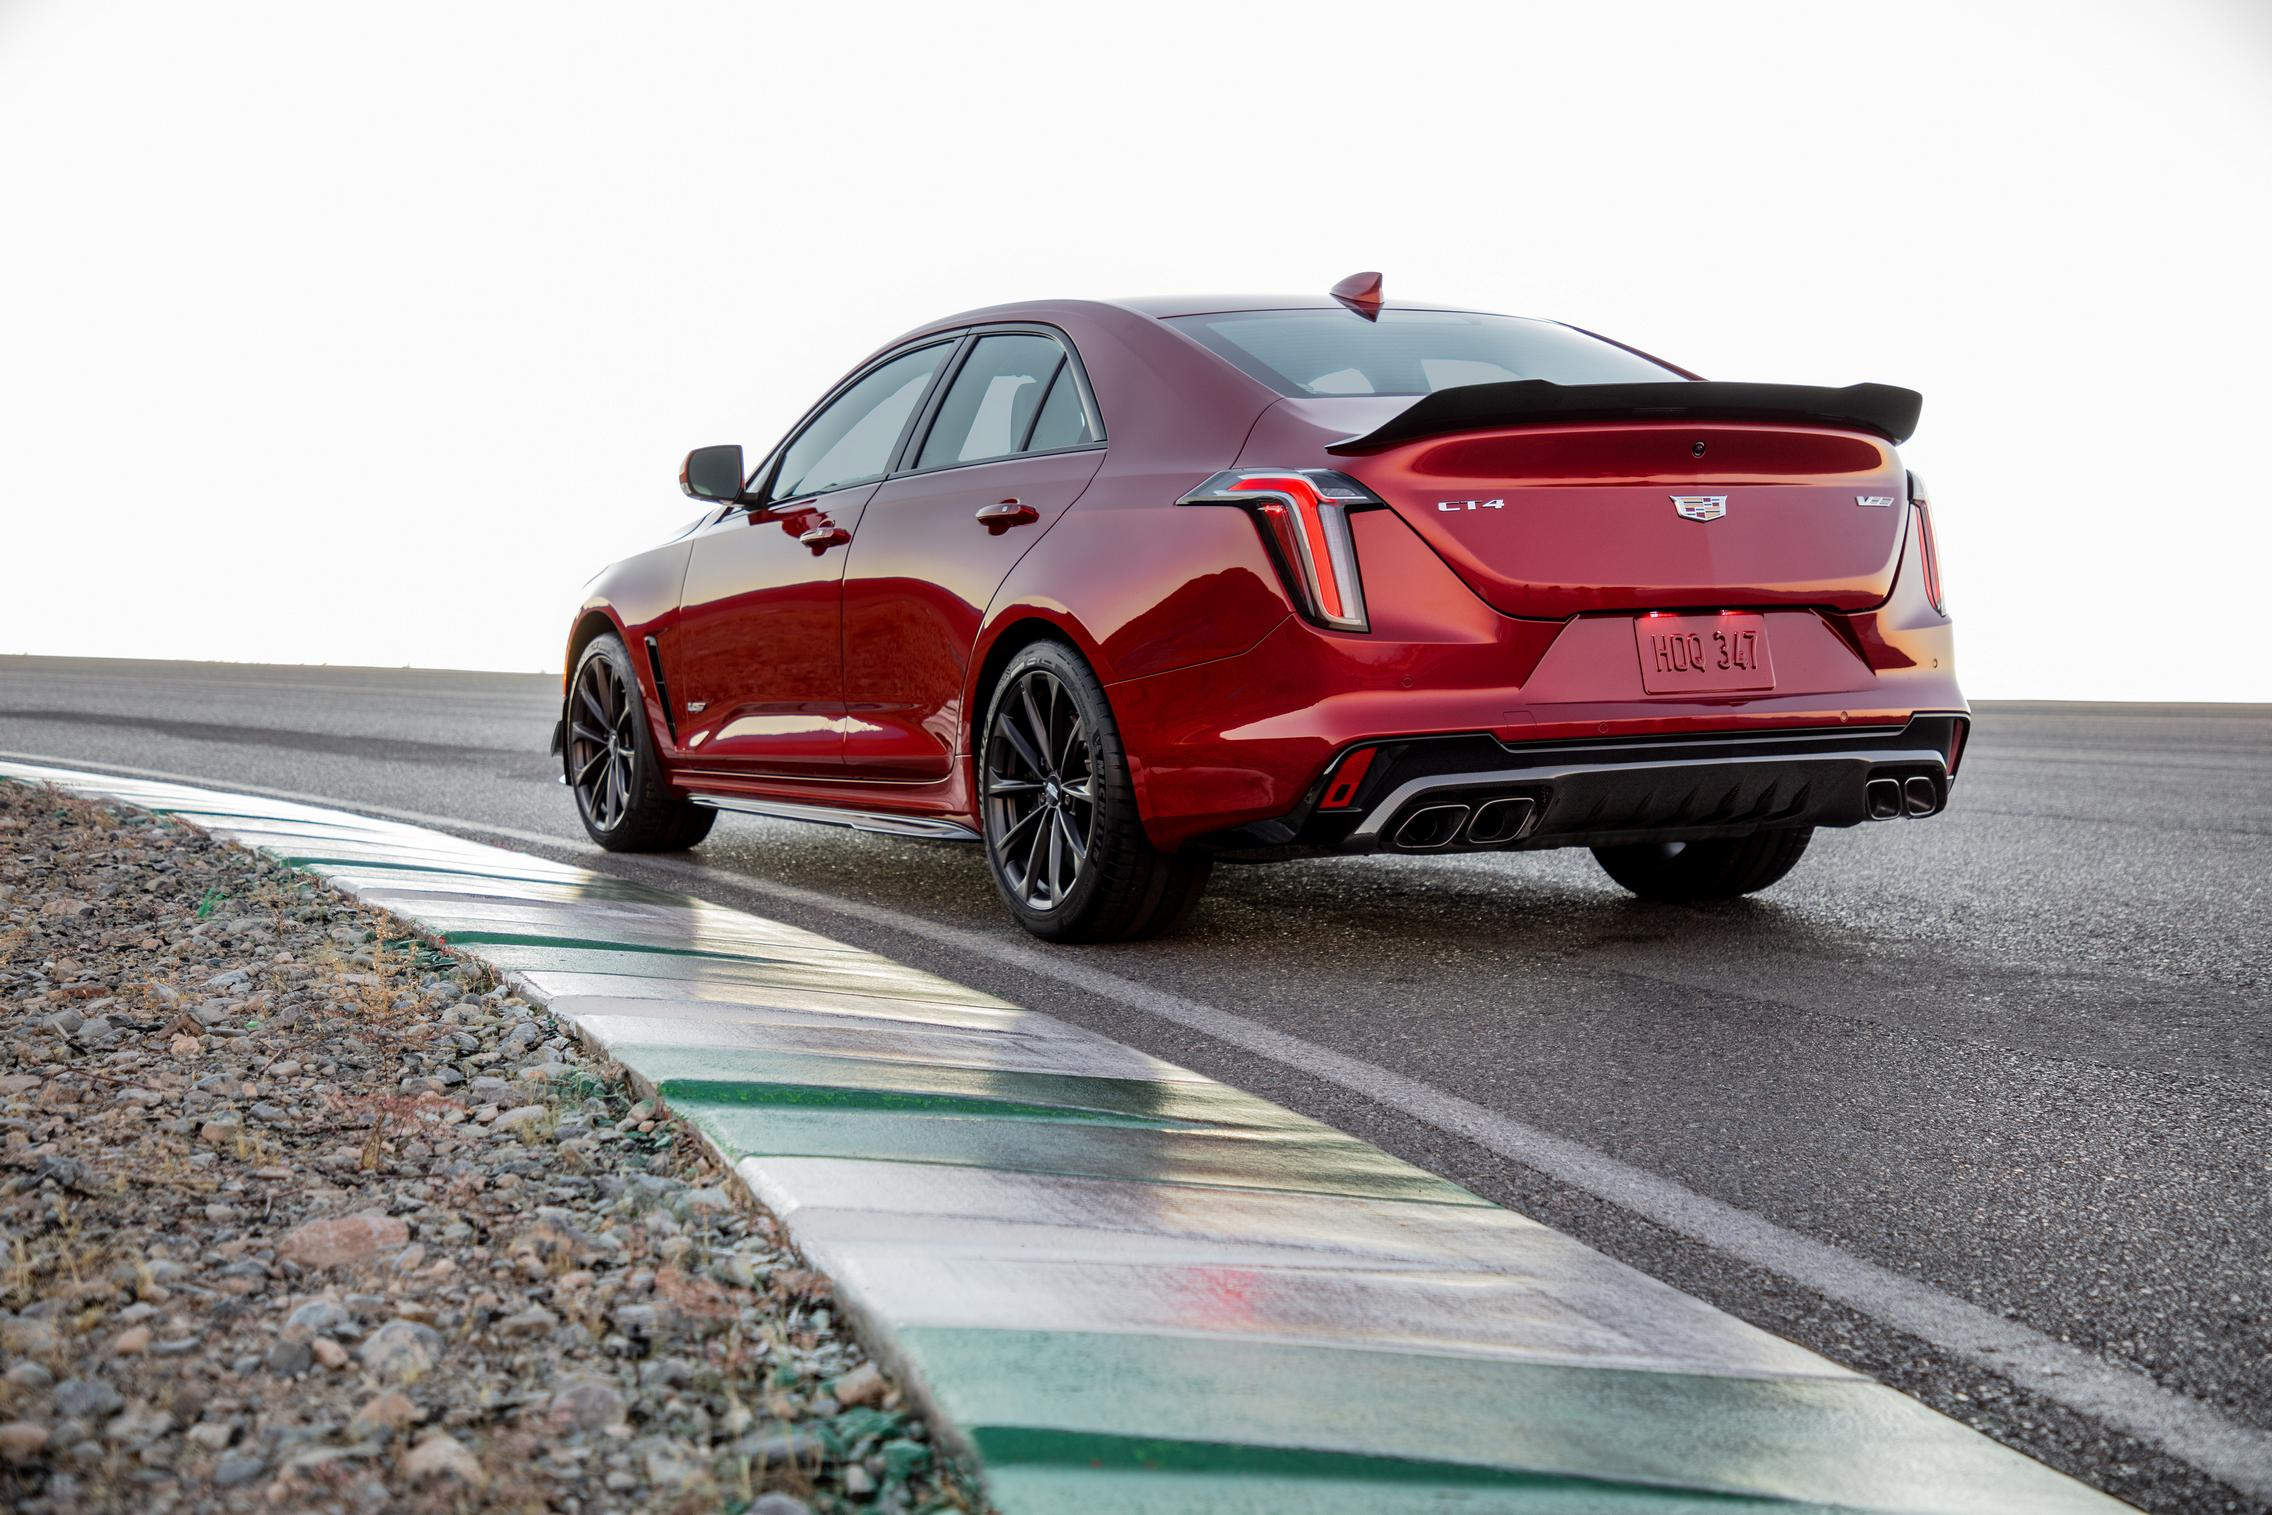 2022 Cadillac CT4-V Blackwing rear